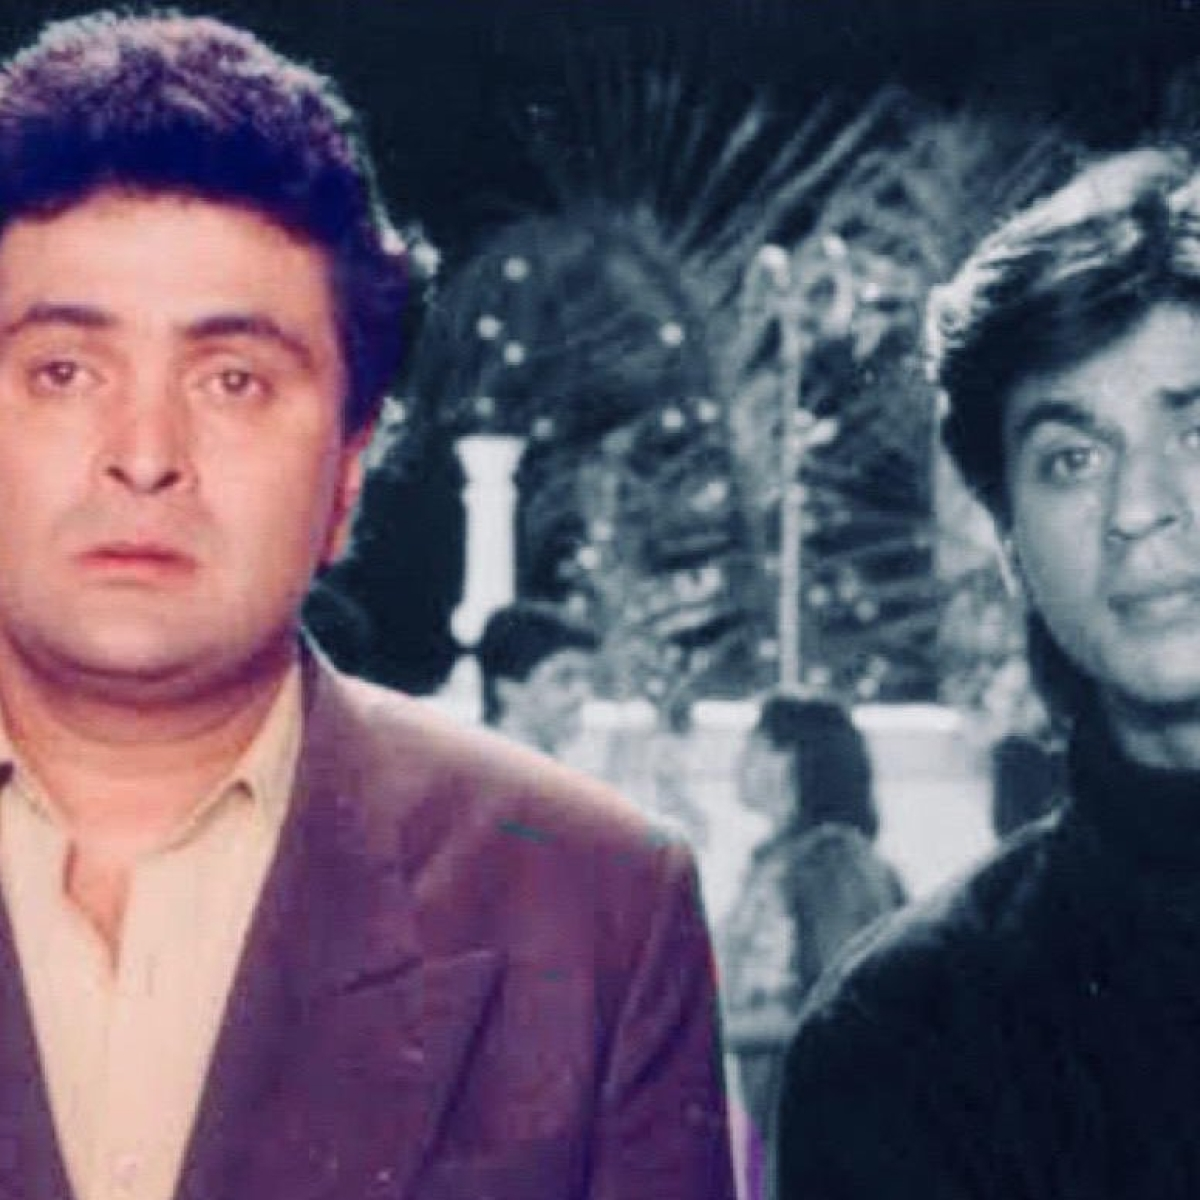 'Your Ashirwaad made me who I am today': Shah Rukh Khan pens down emotional tribute to Rishi Kapoor